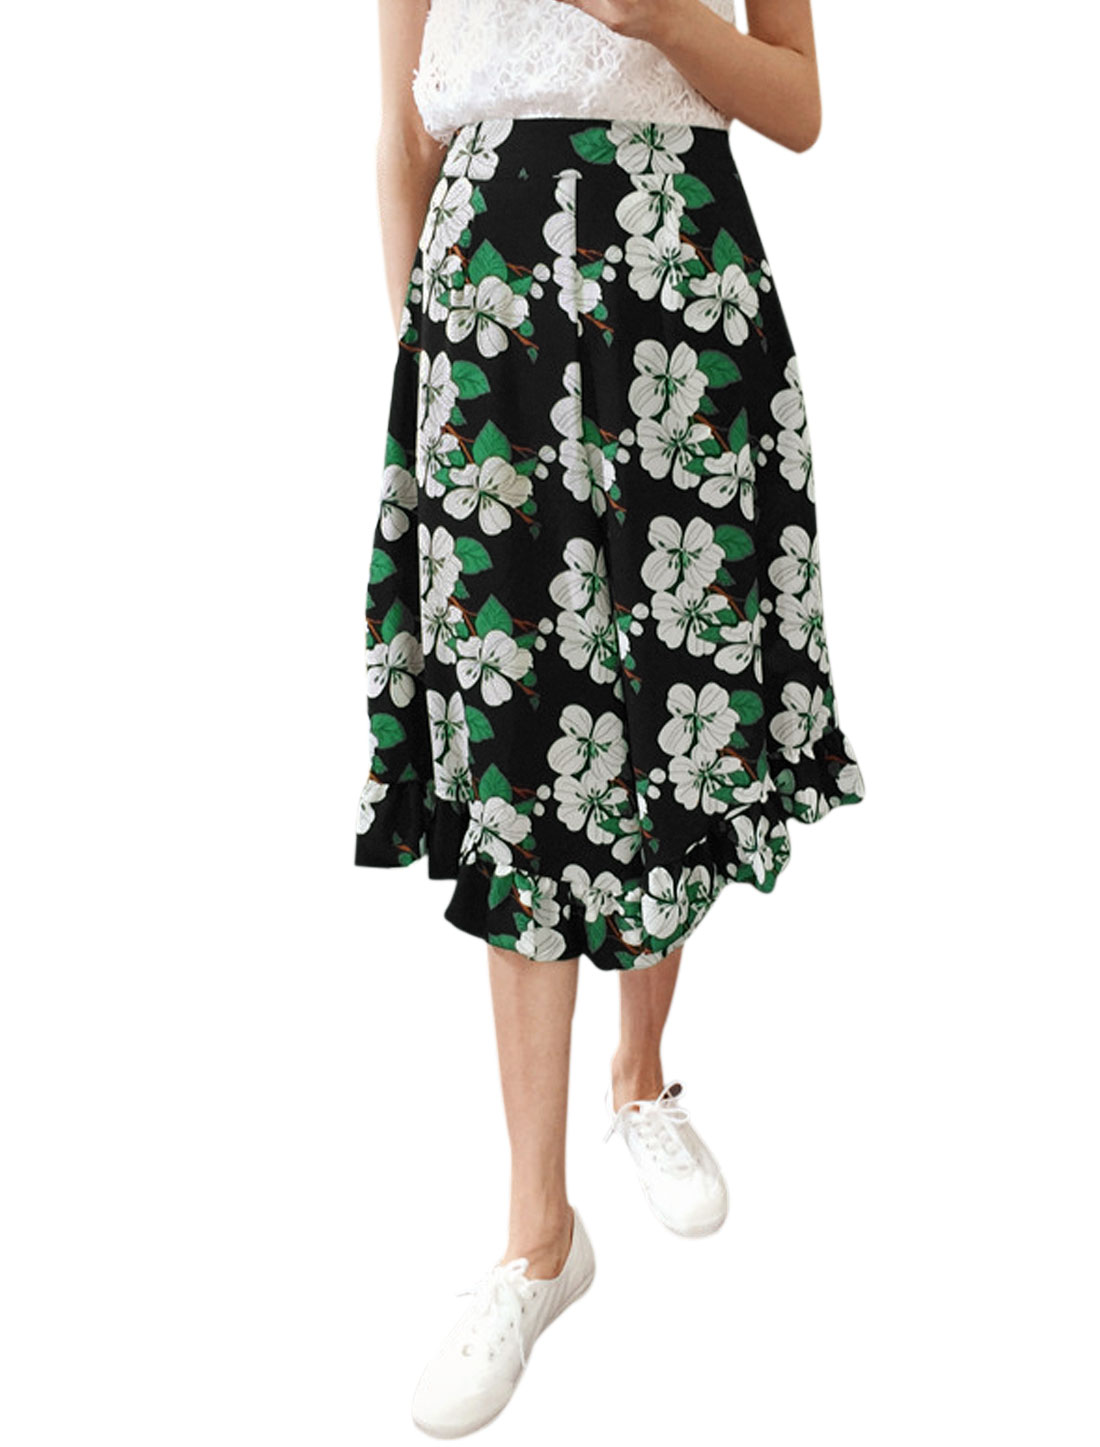 Women Floral Prints Flouncing Cuffs Capris Wide Leg Pants Green Black XS